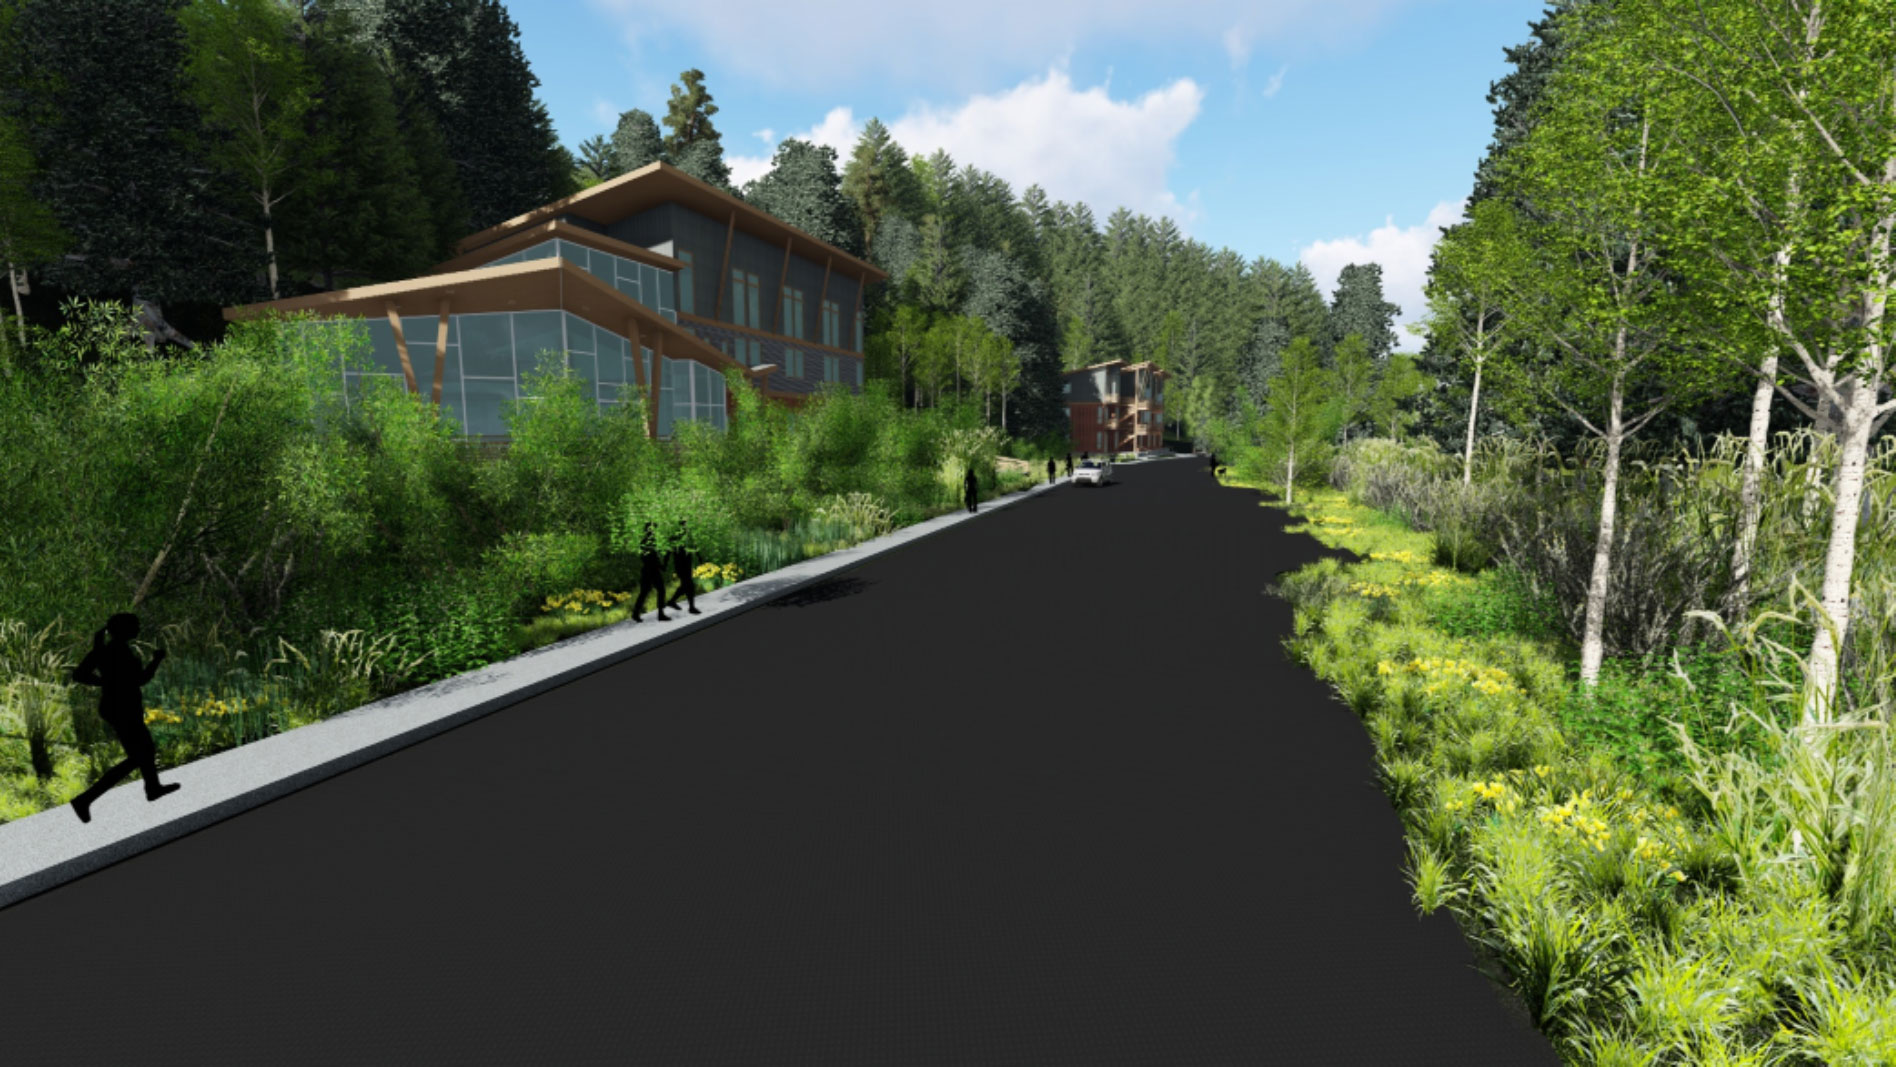 - Virginia Placer Affordable Housing